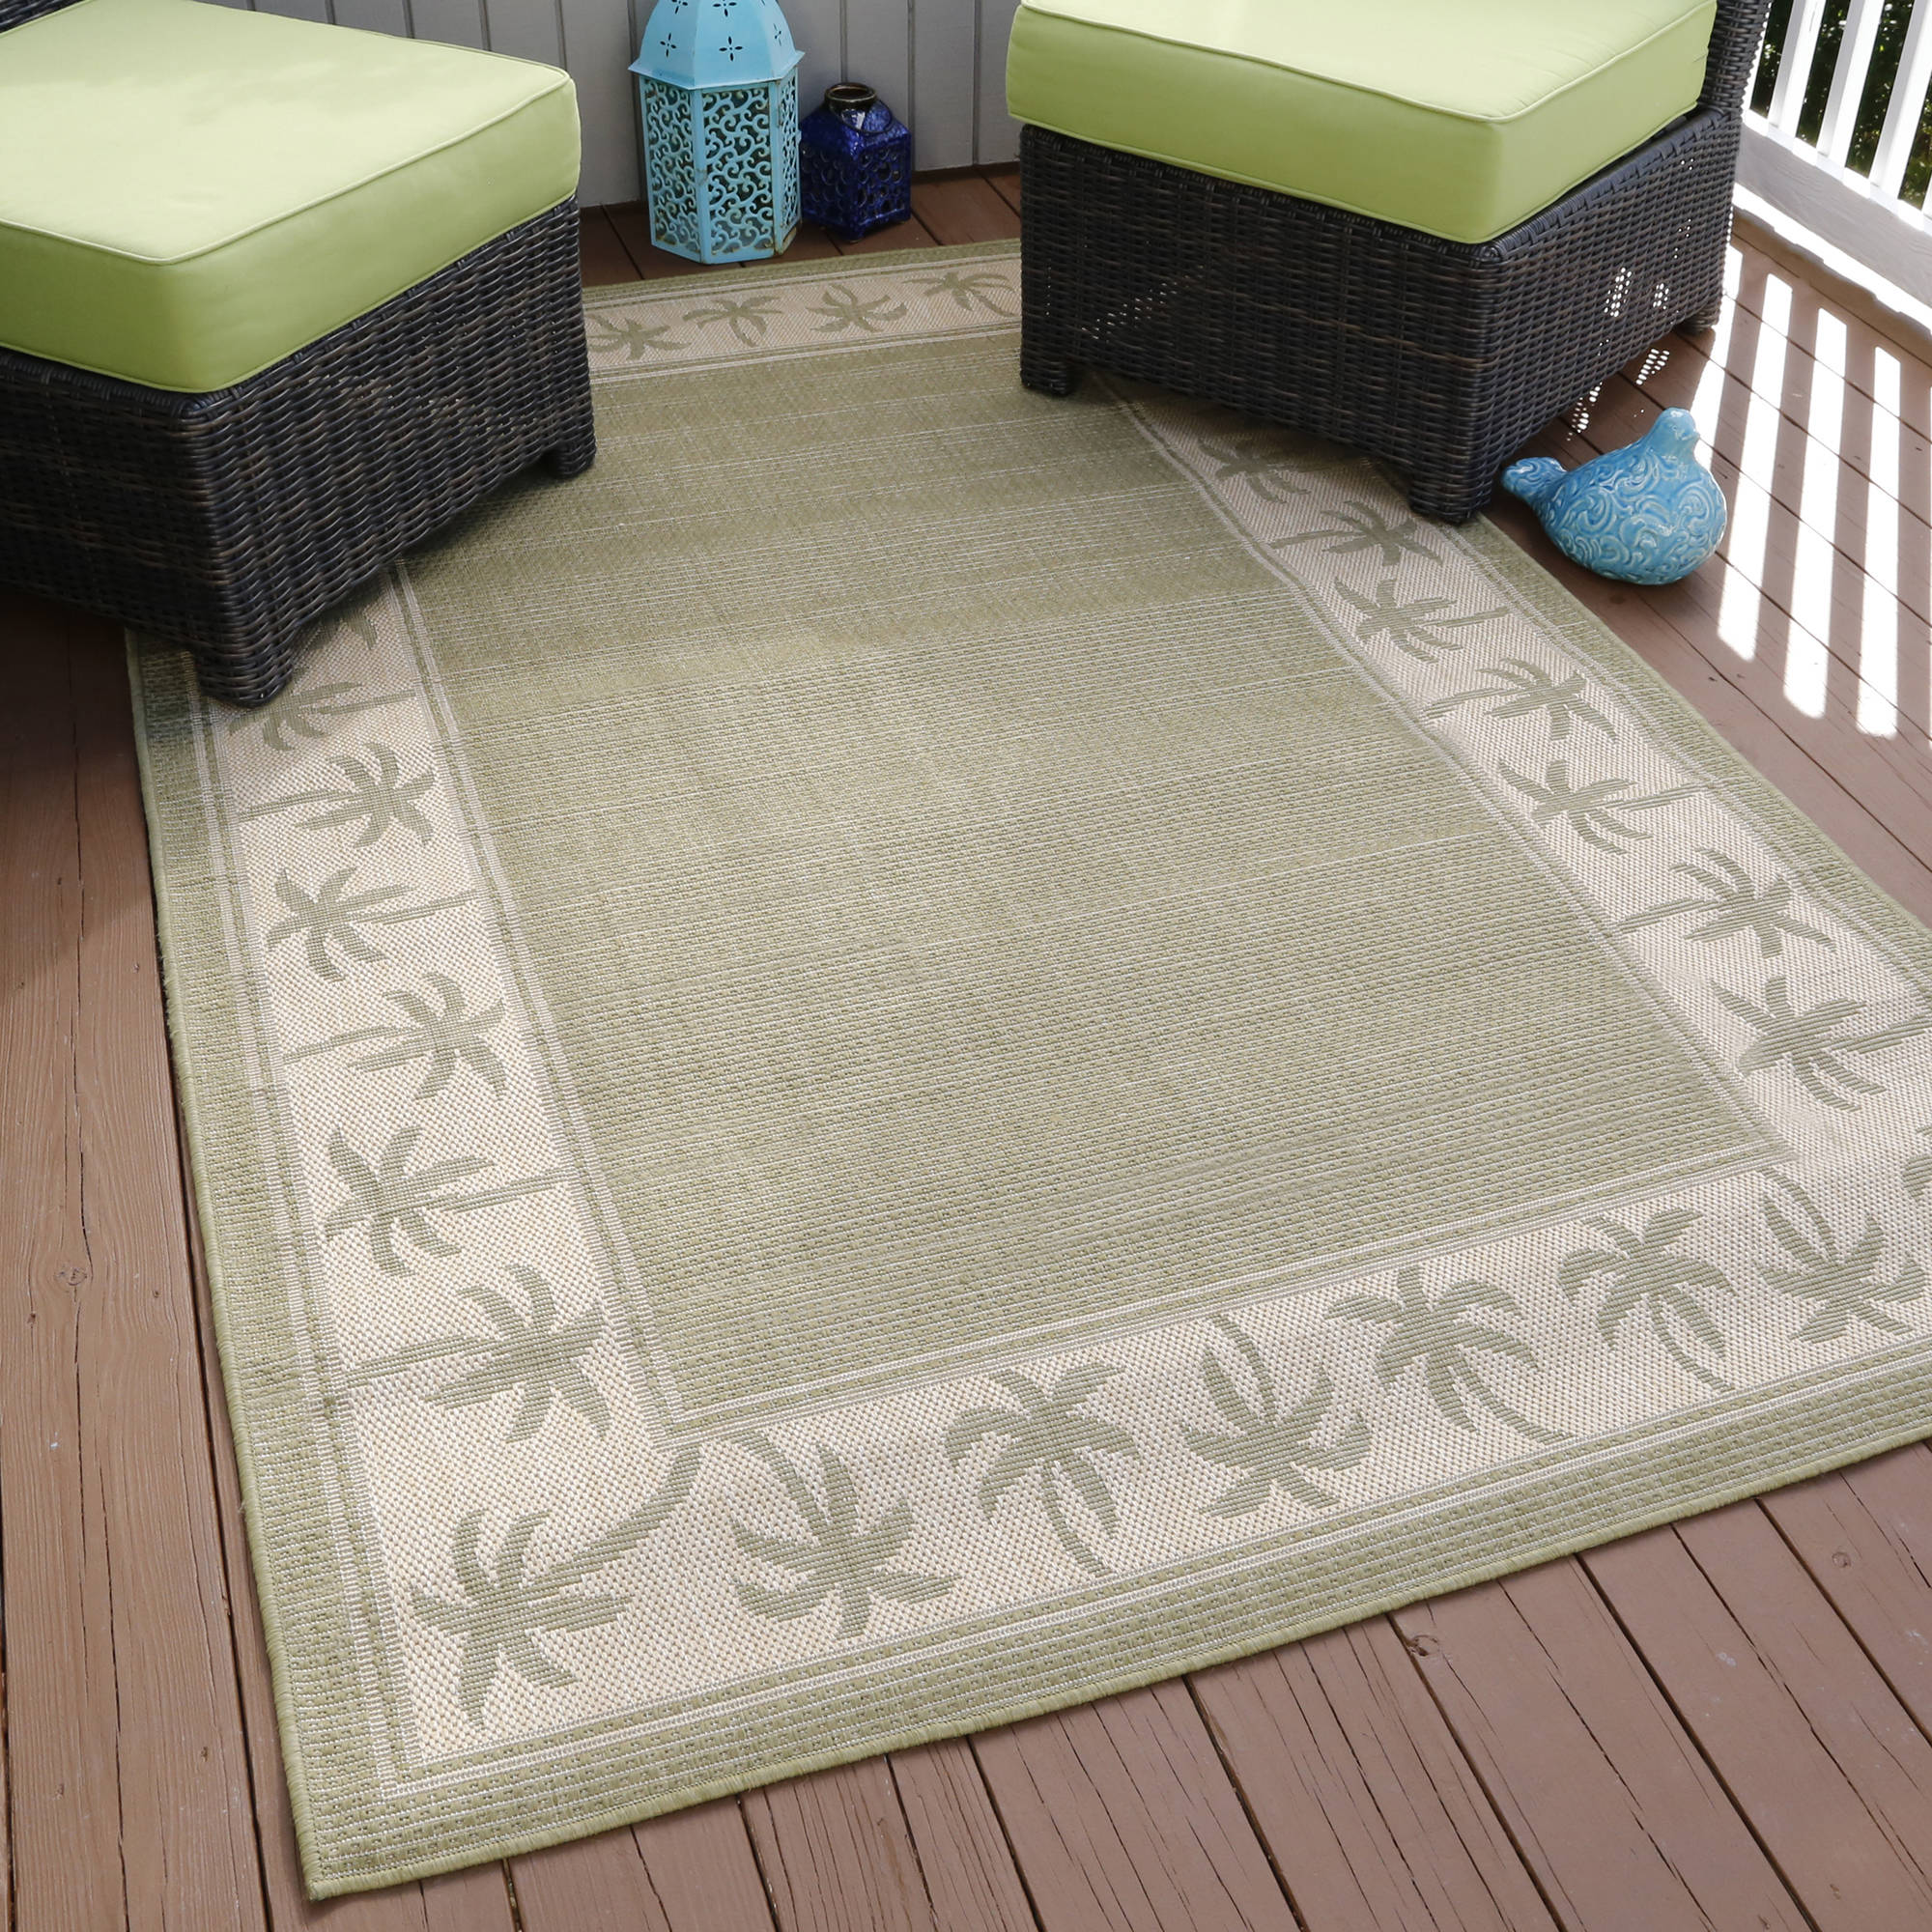 Somerset Home Palm Trees Indoor/Outdoor Area Rug, Green, 5' x 7'7""